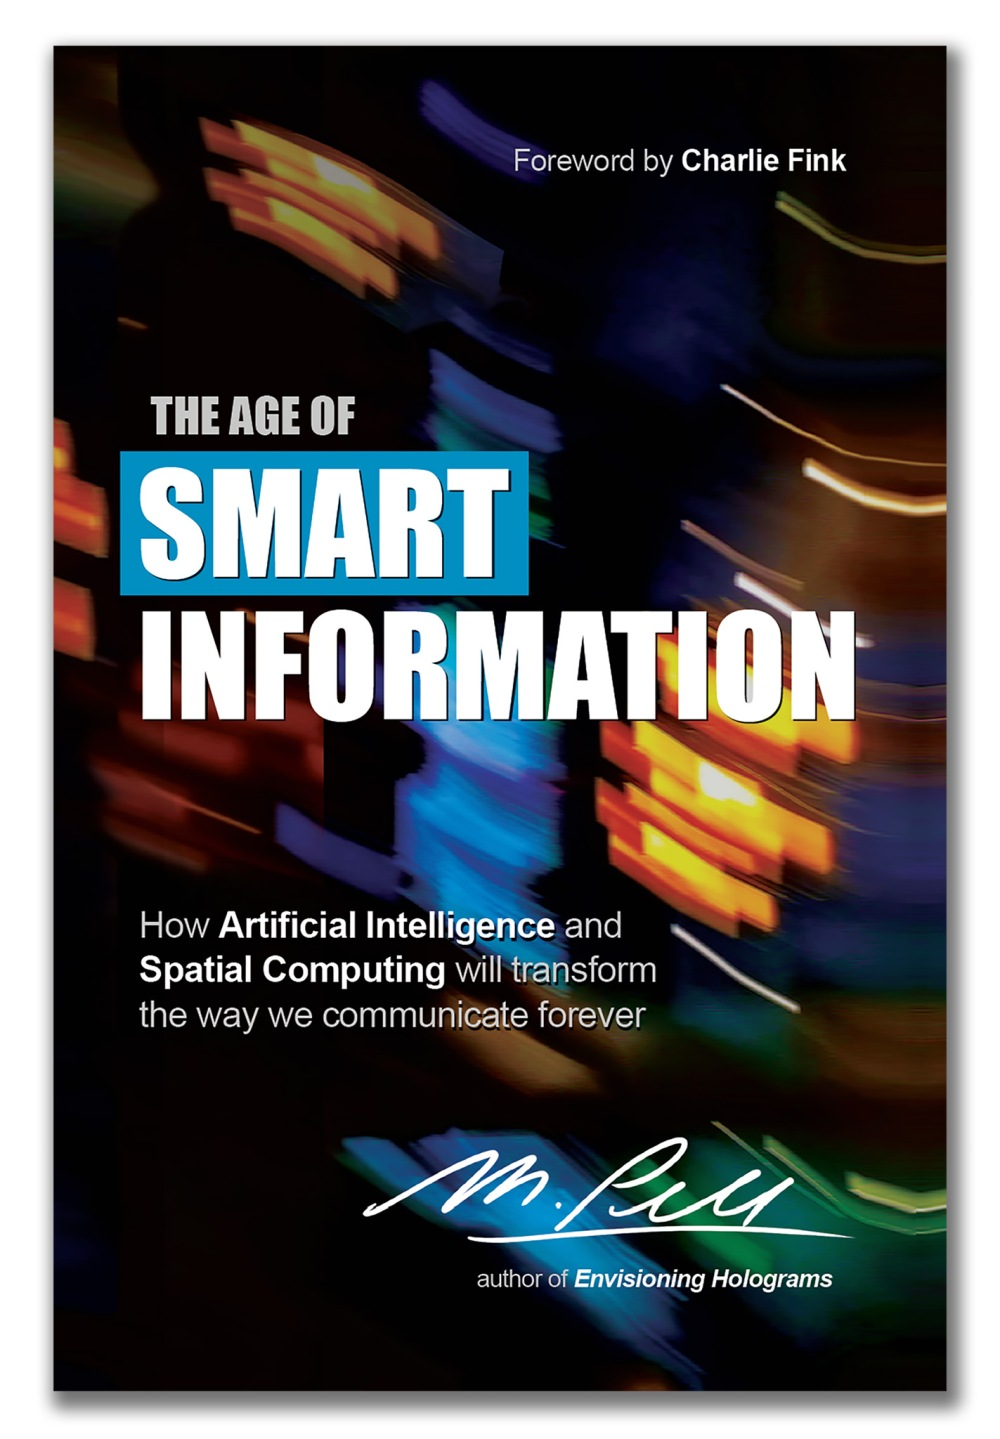 TheAgeOfSmartInformation_MPell_Cover_Promo_02